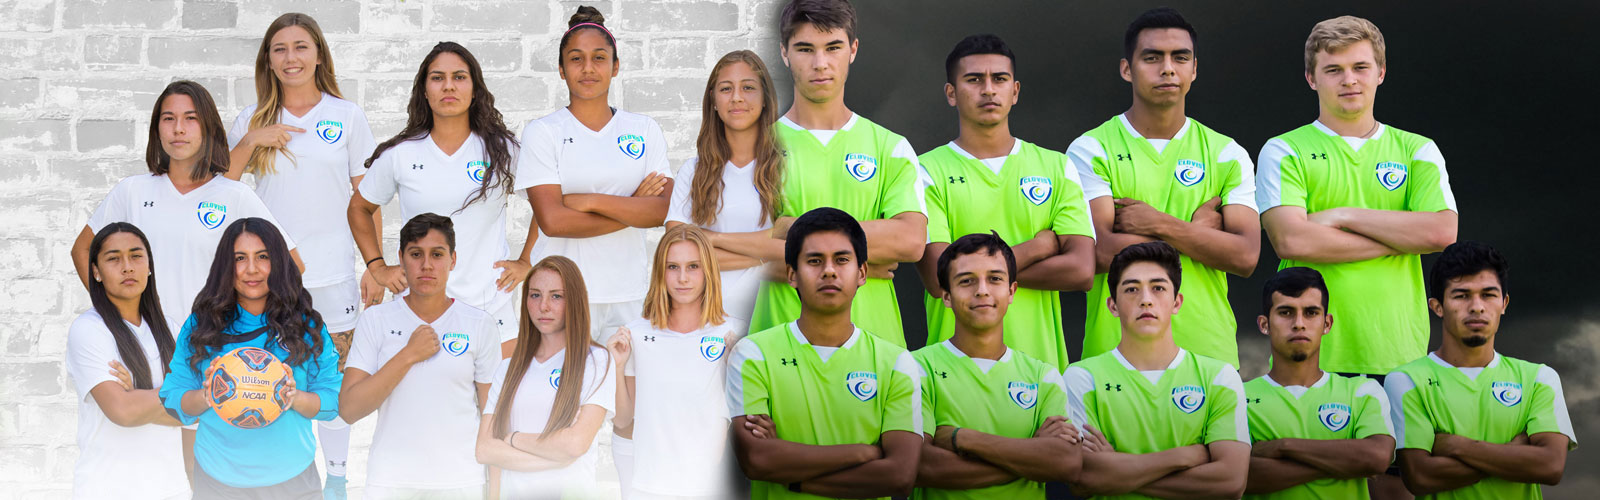 collage of boys and girls team photos